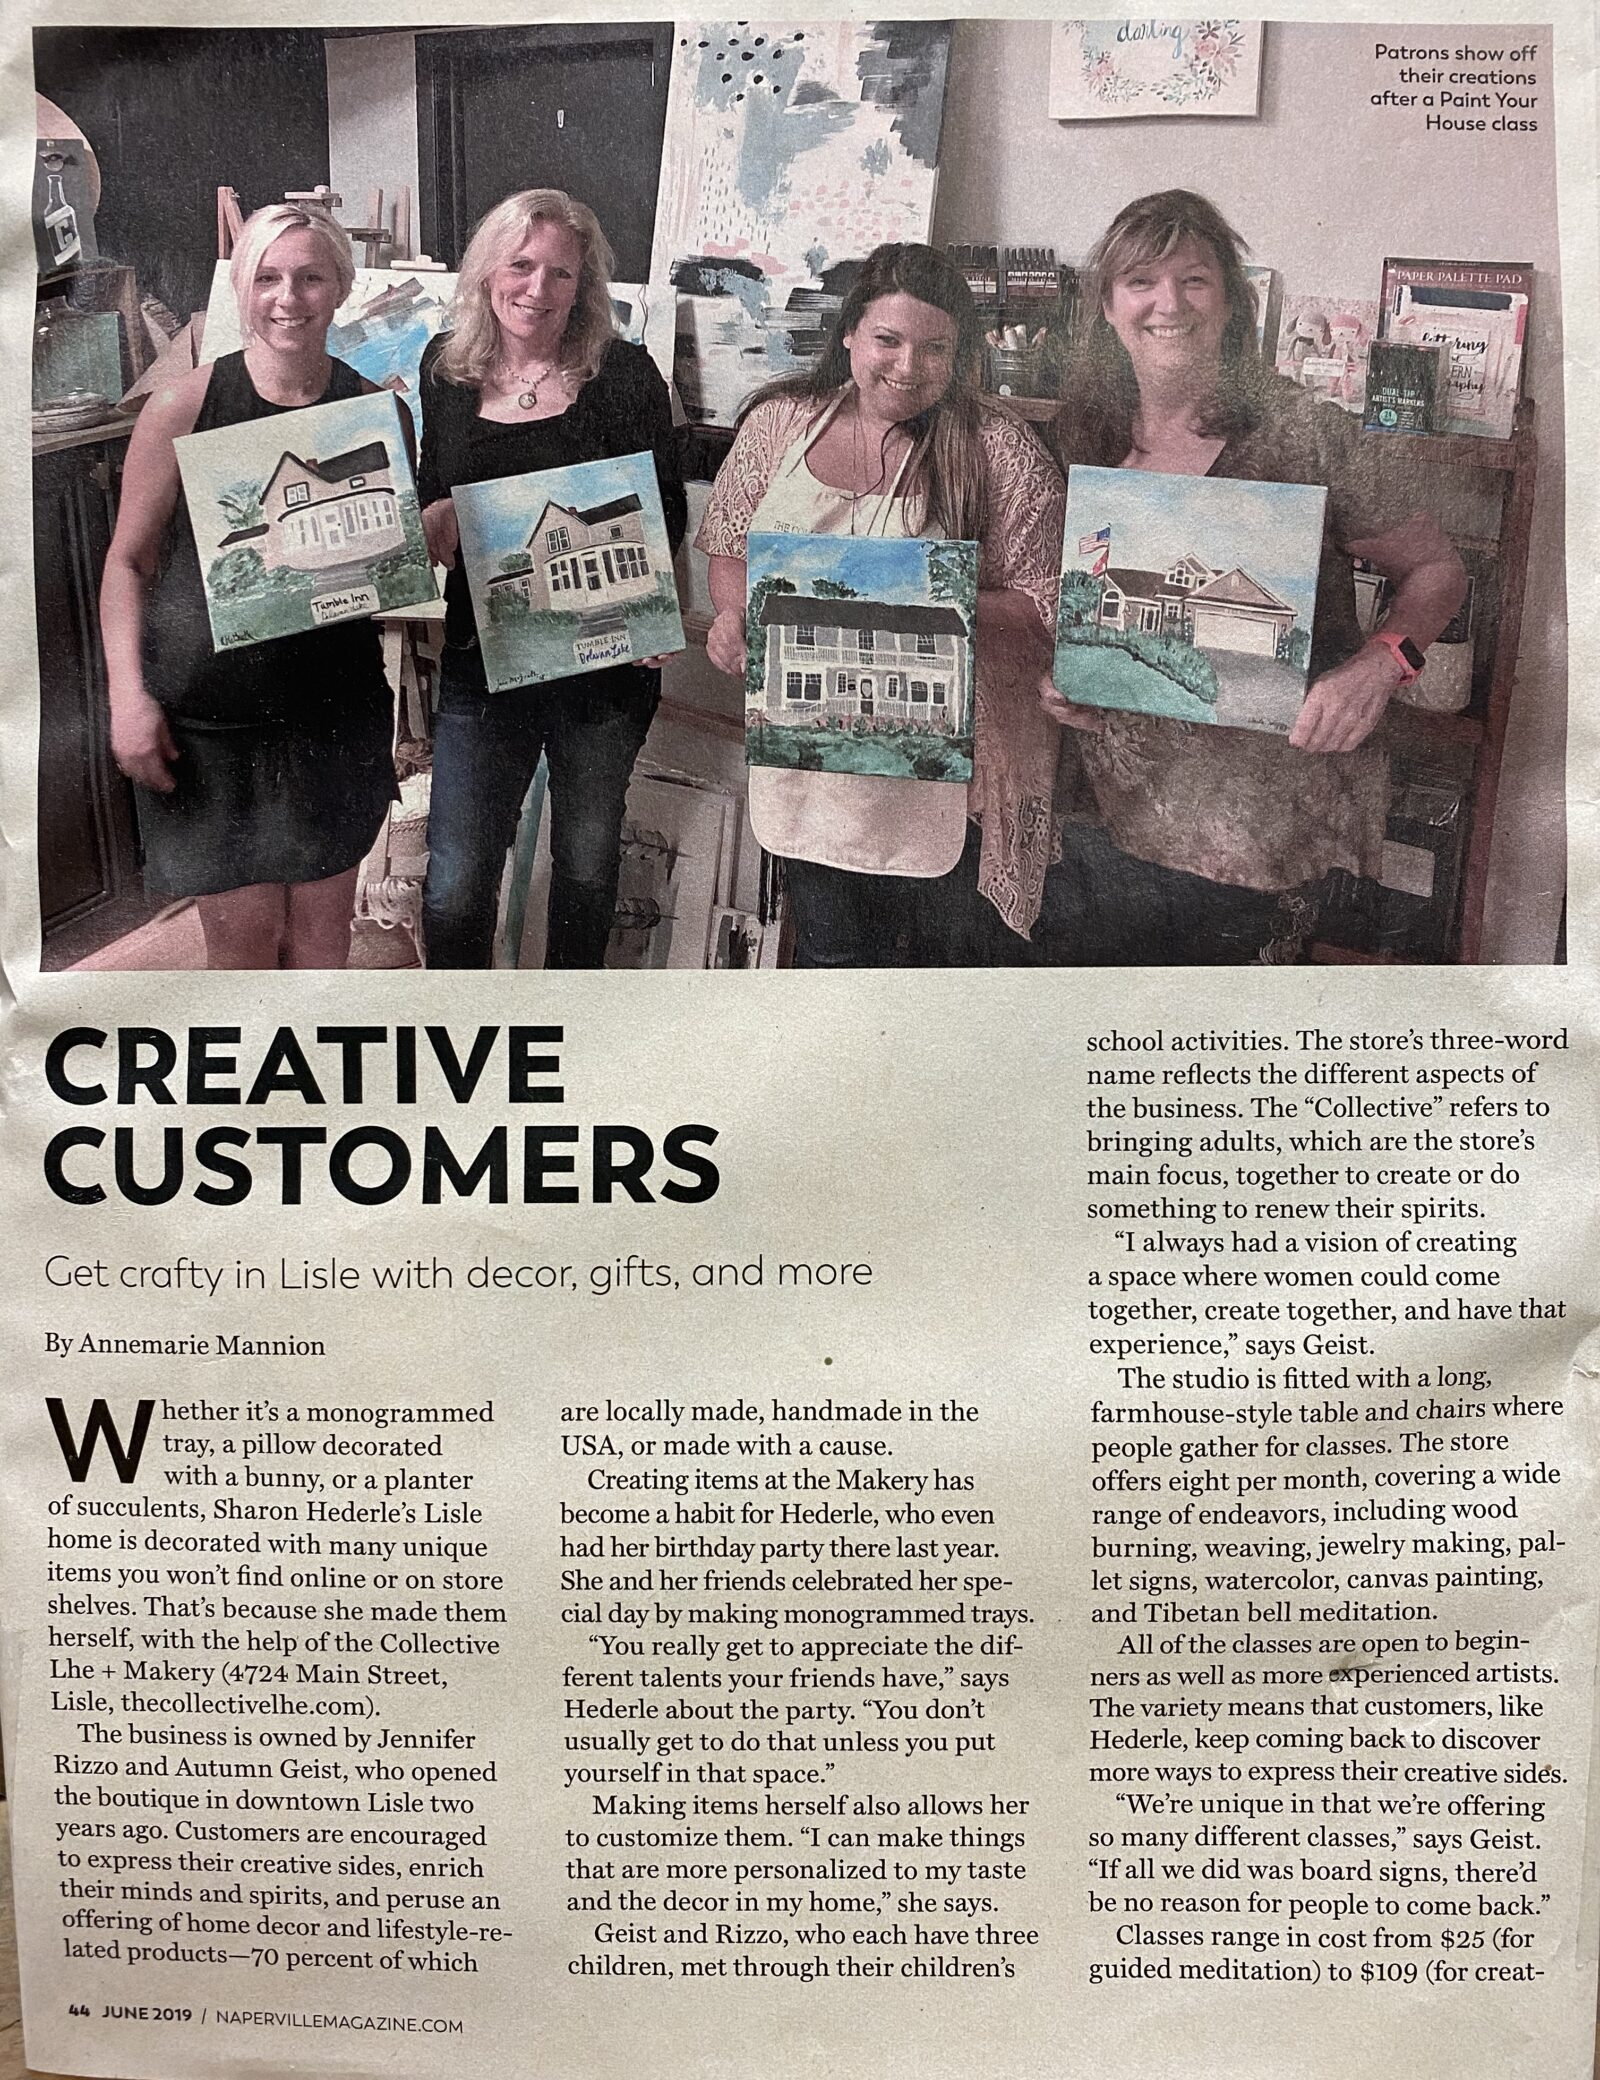 Creative customers in our Makery in Lisle, IL The Collective lhe